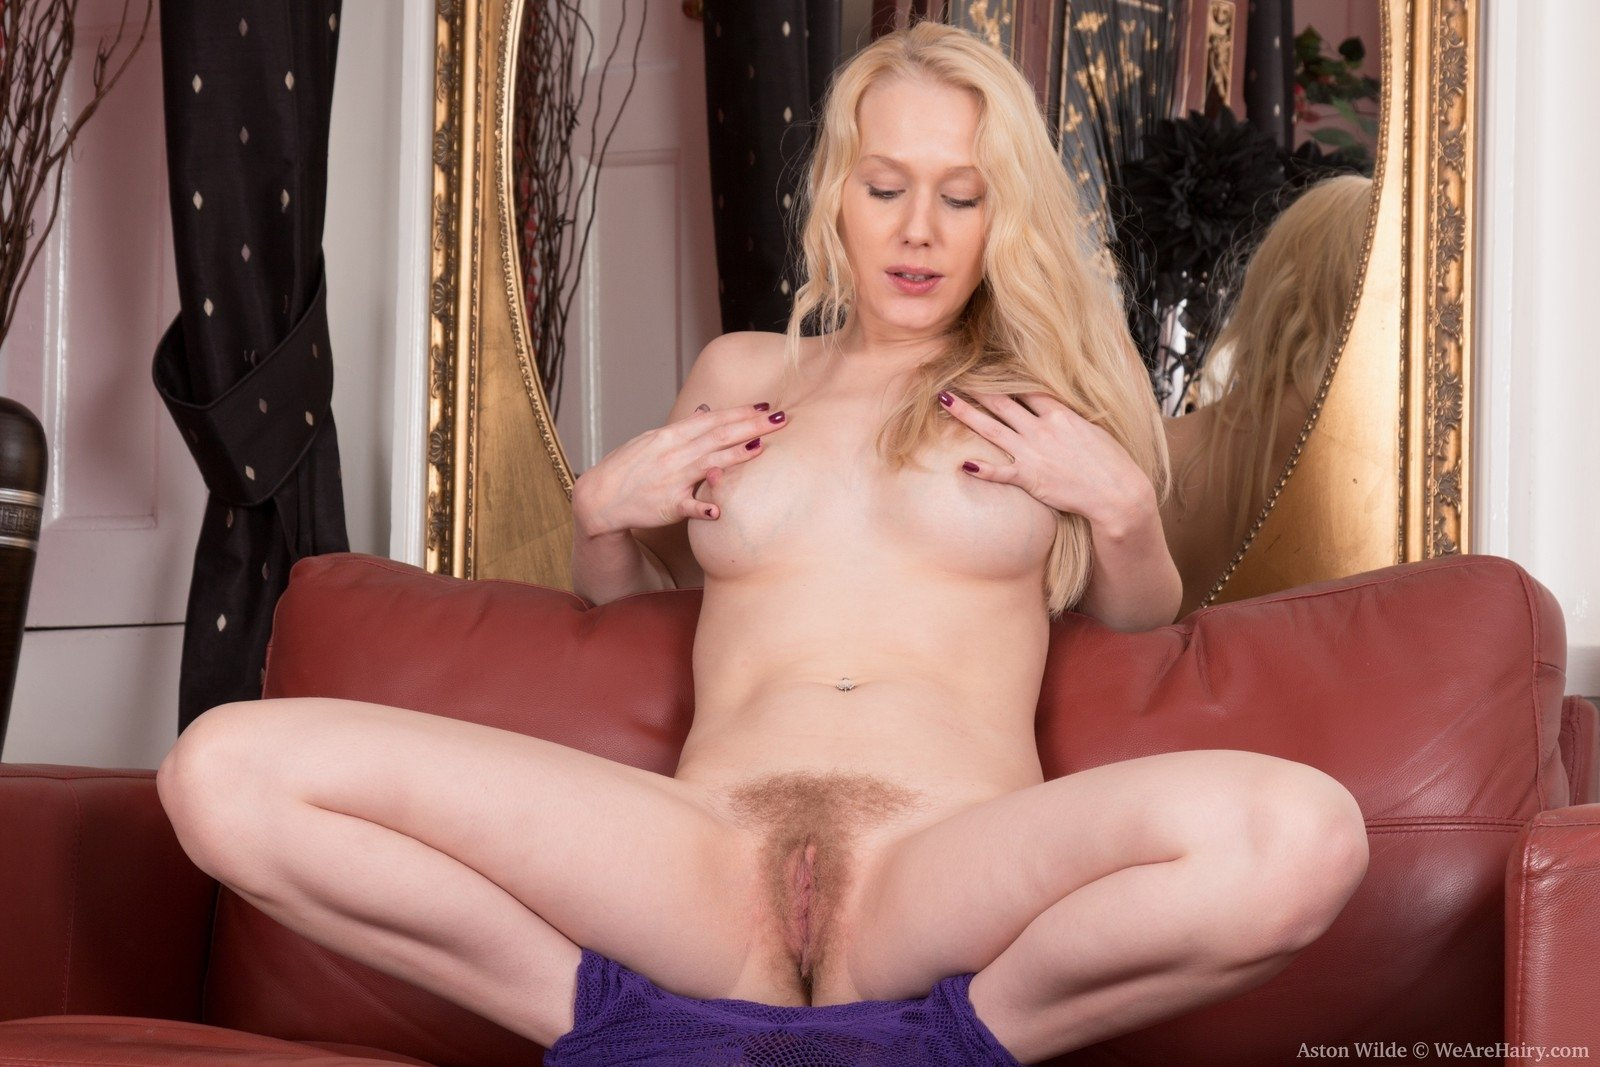 Wife in lingerie gives great handjob to husbands buddy